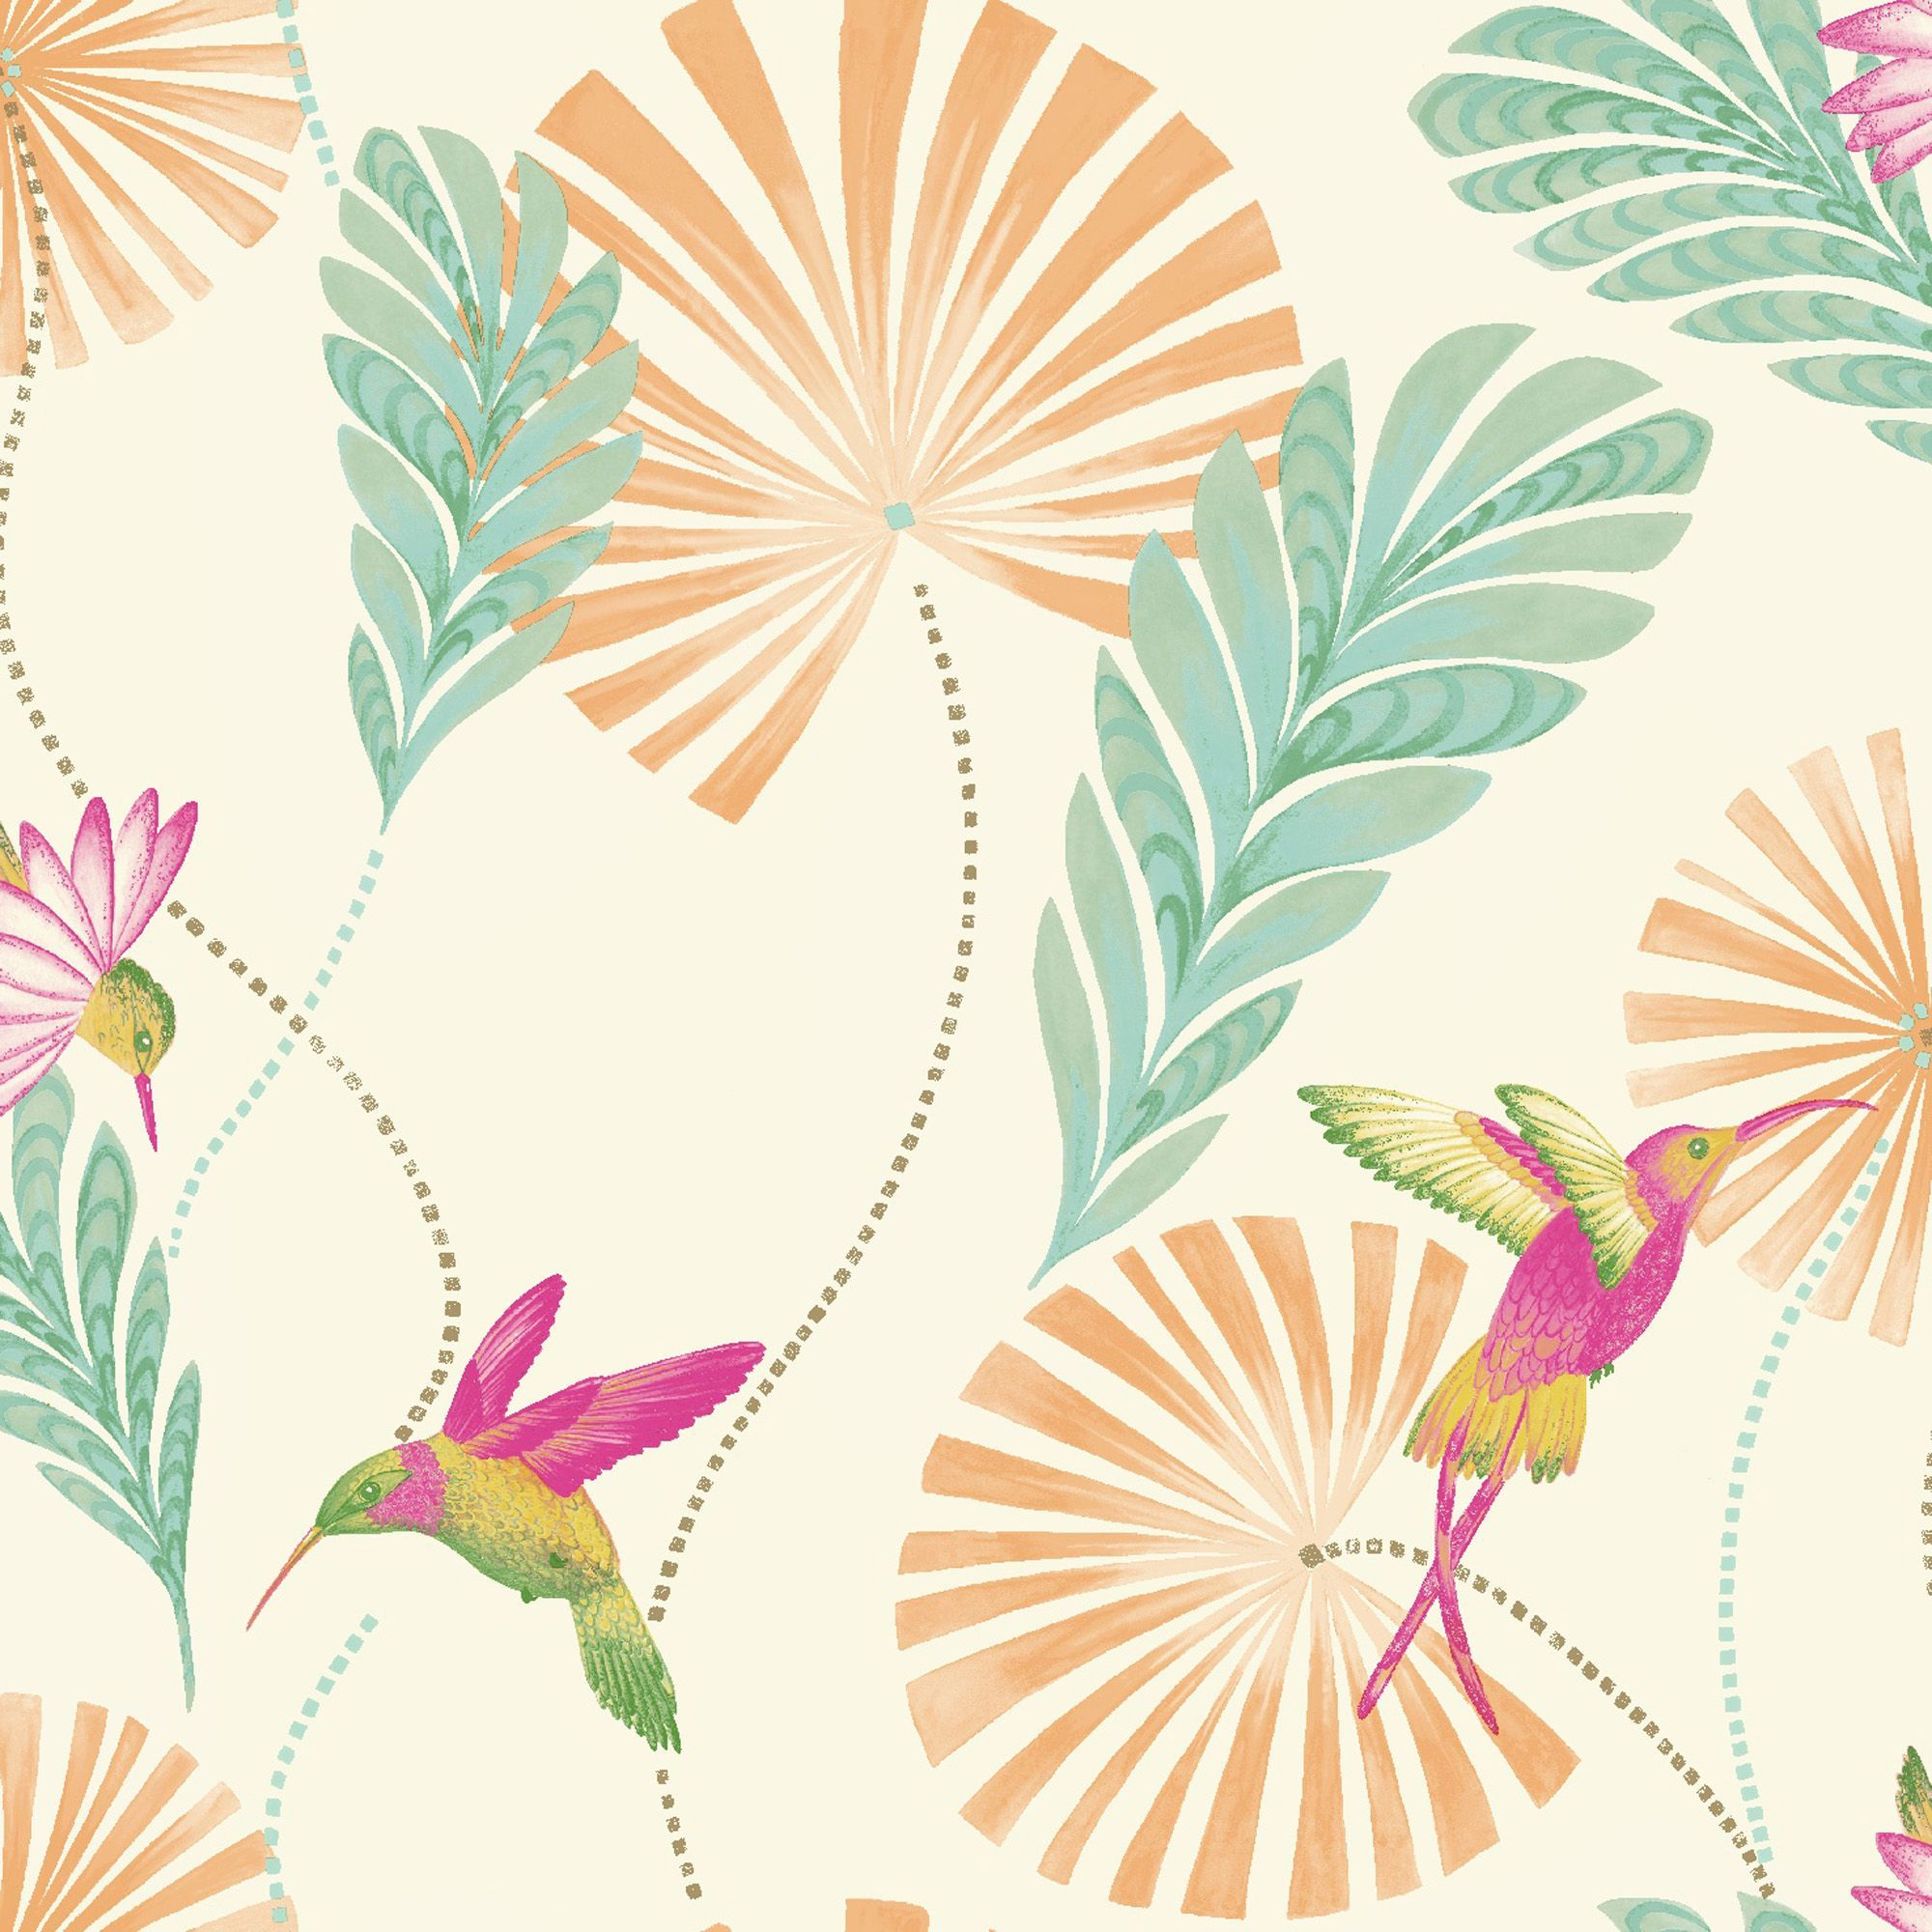 Statement Humming Bird Wallpaper - Departments - Diy At B&Q